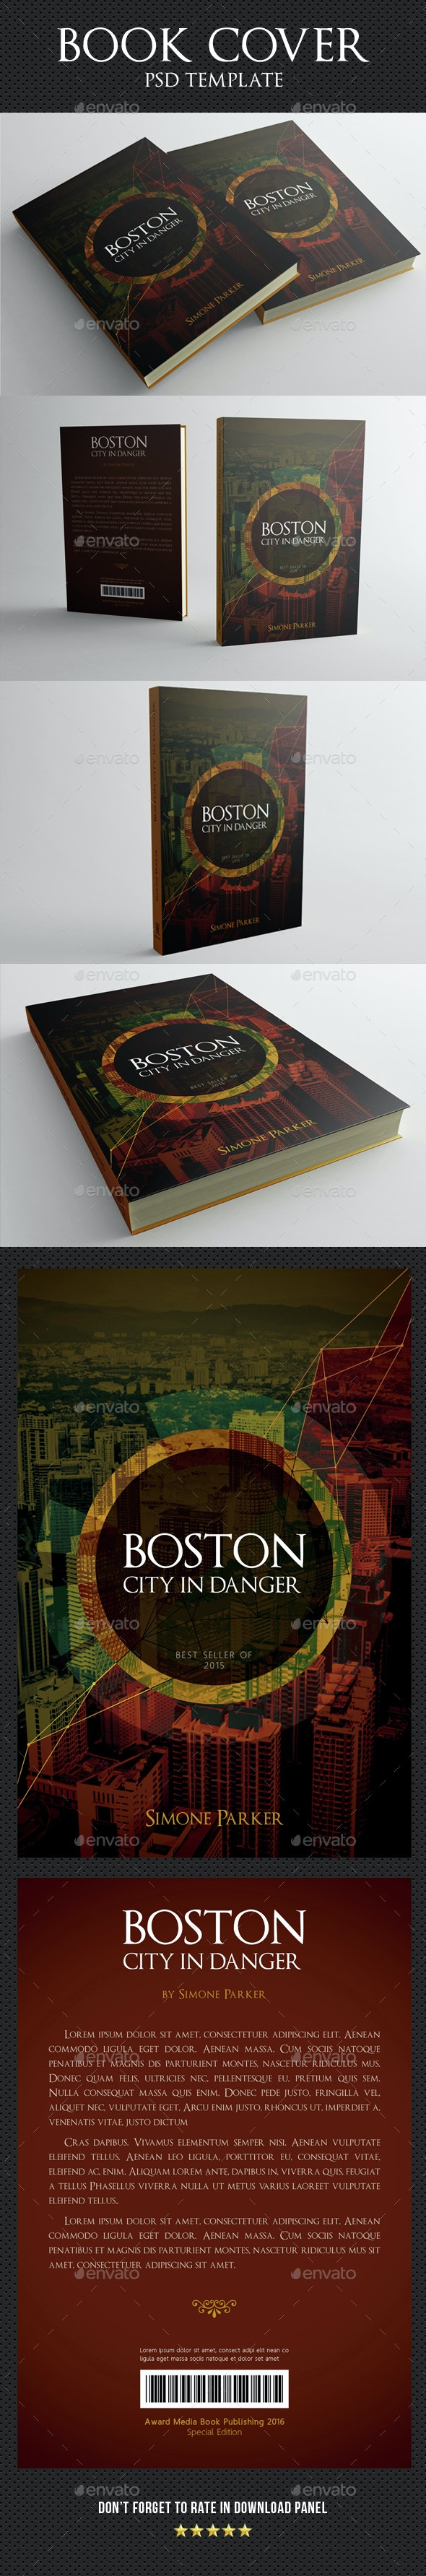 Book Cover Template 06 - Miscellaneous Print Templates